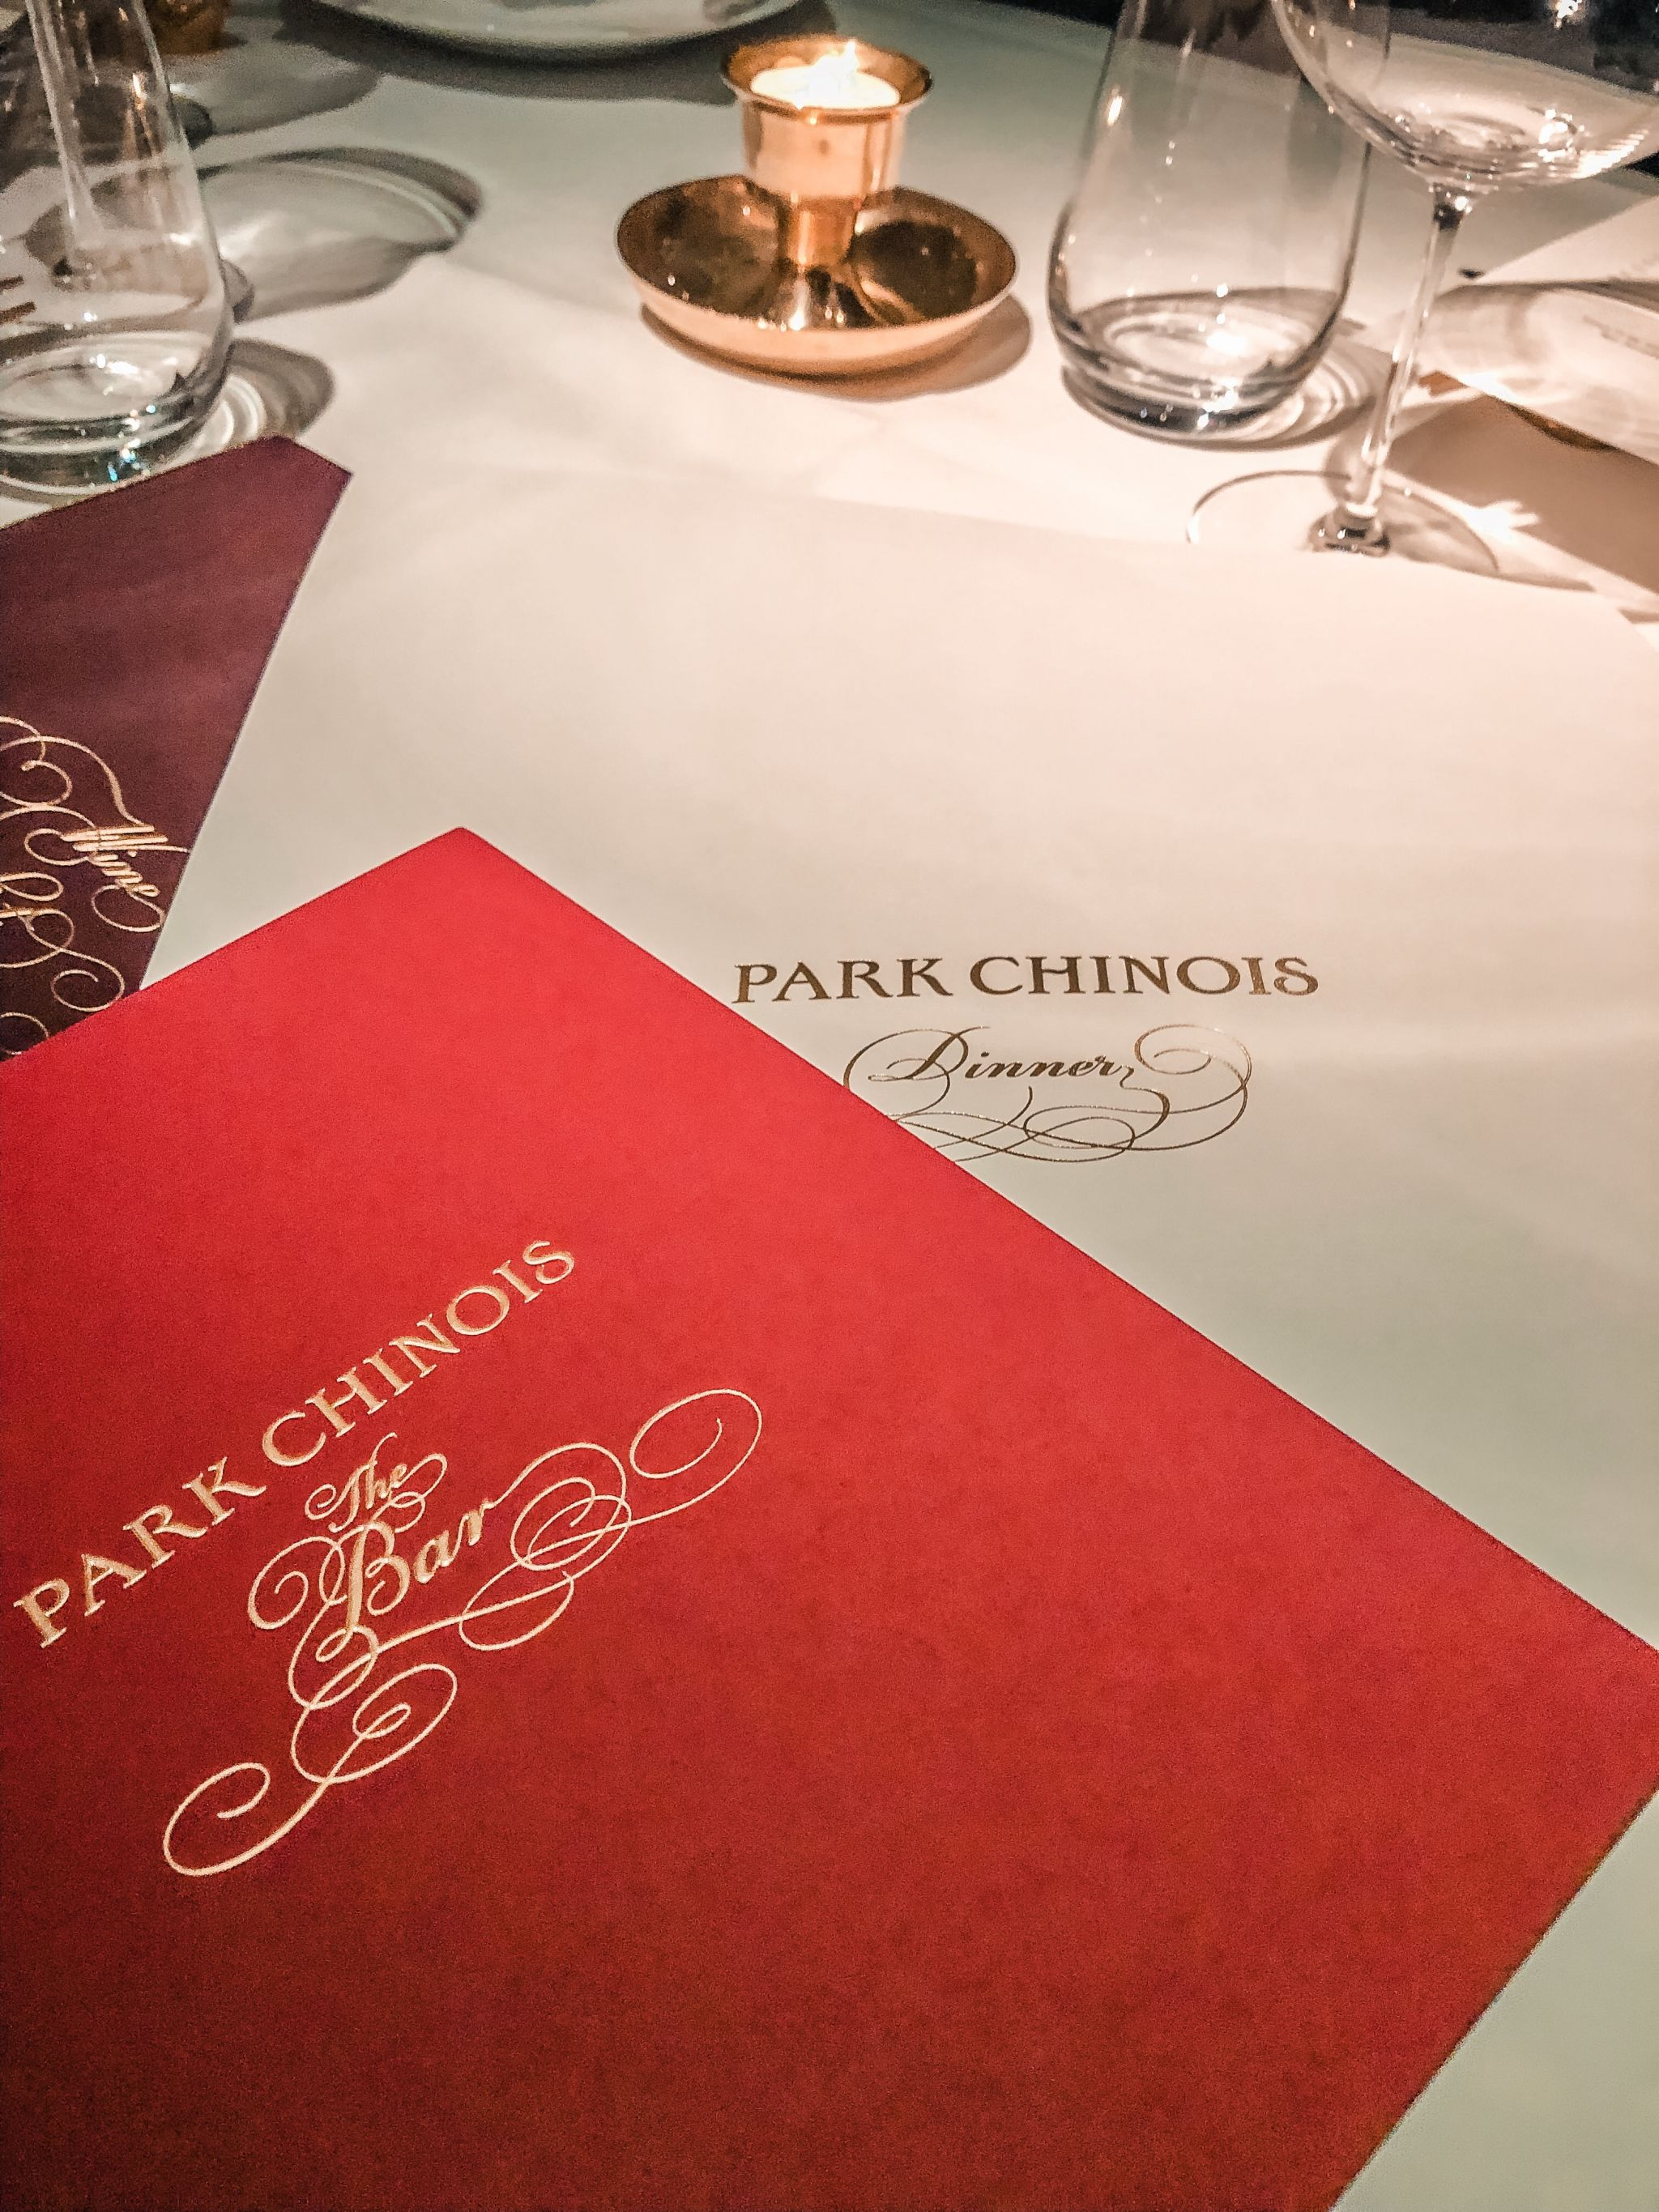 Lit Chinois But Park Chinois The London Haloodie